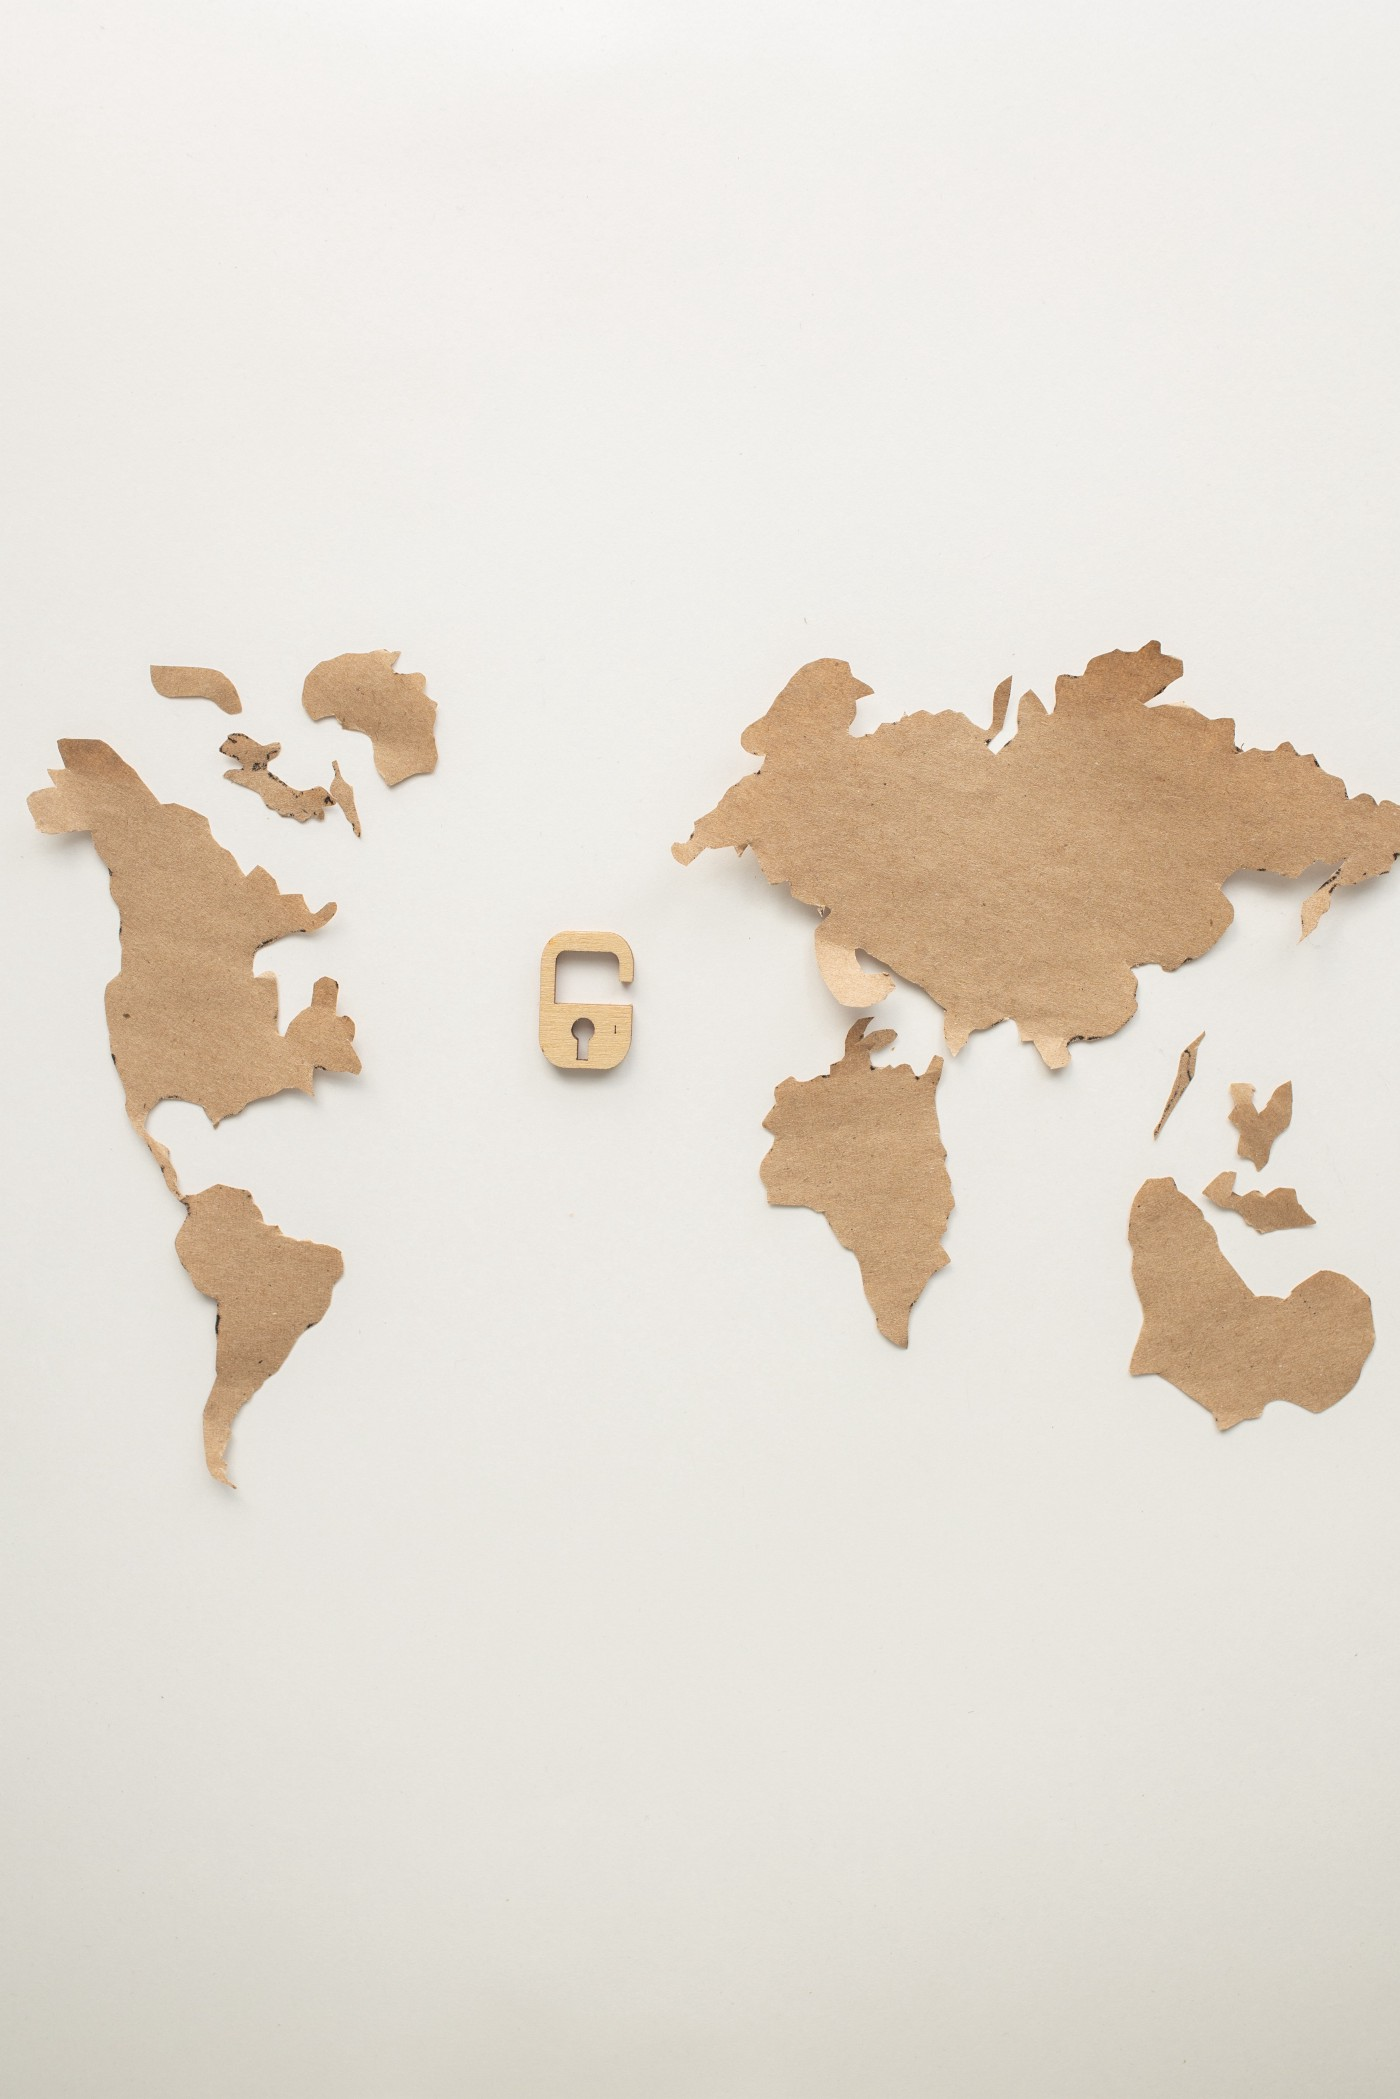 cardboard cut outs of the continents and an open lock